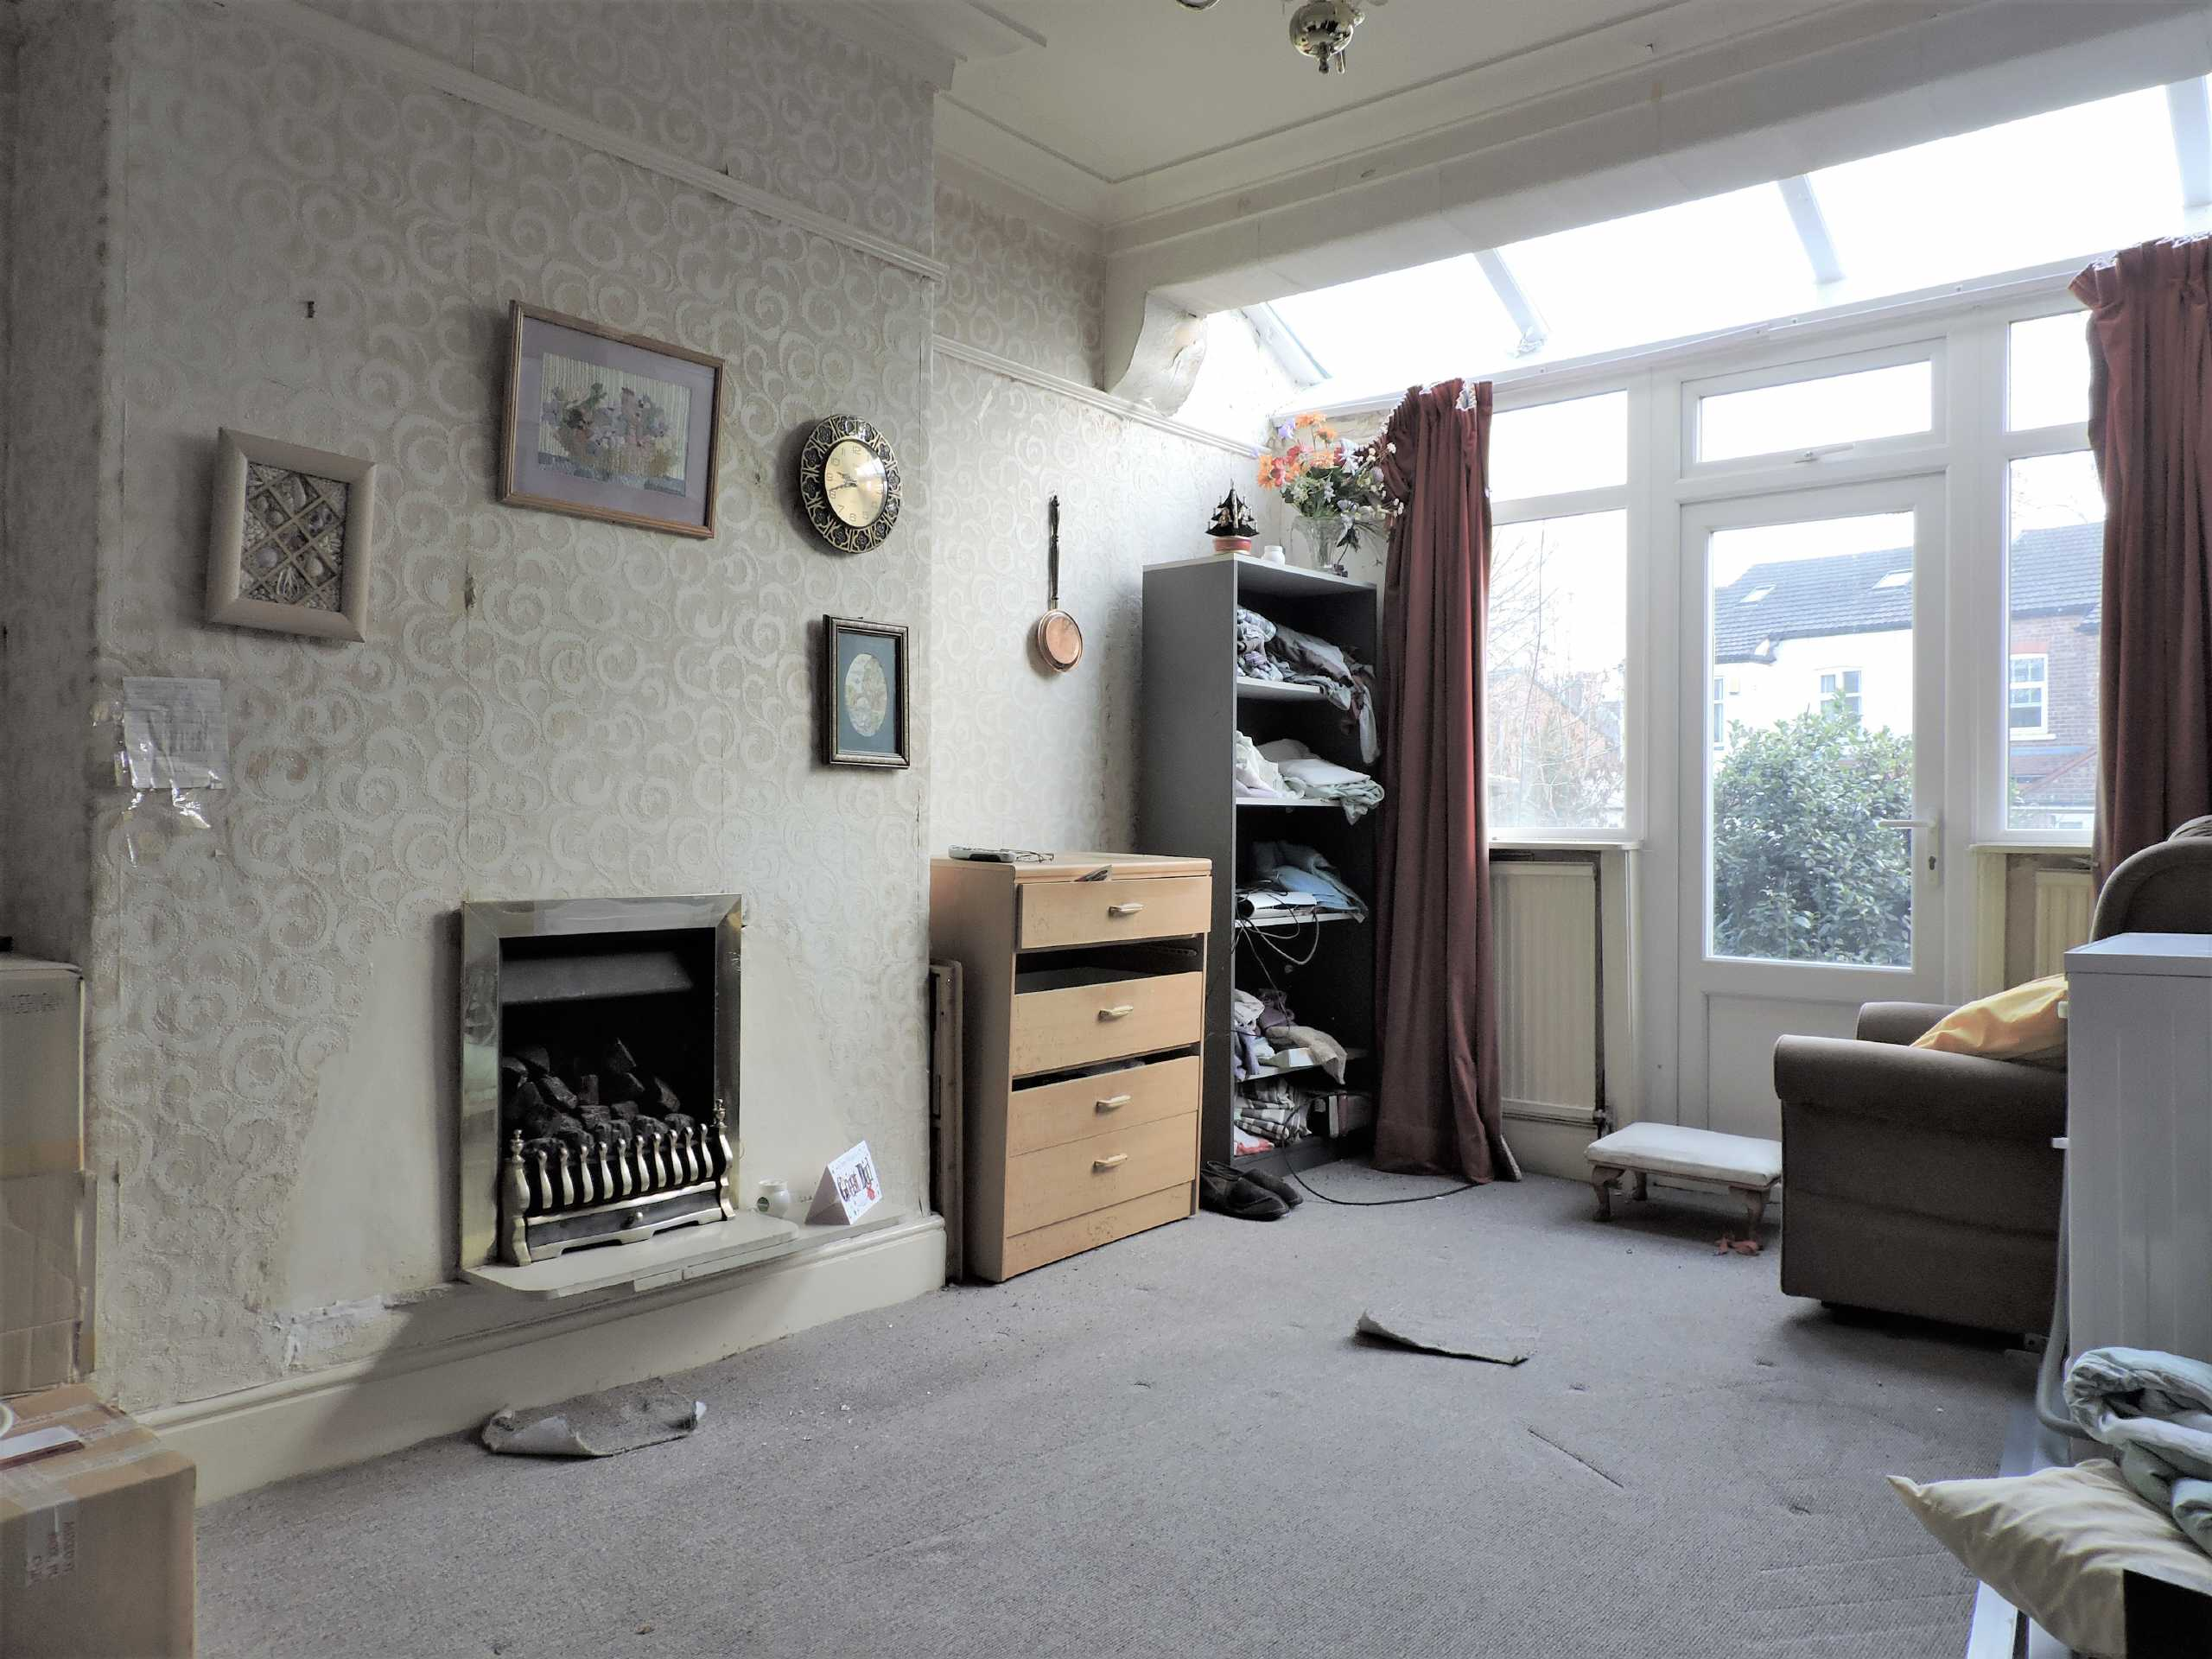 Lounge of a property - Connaught Avenue